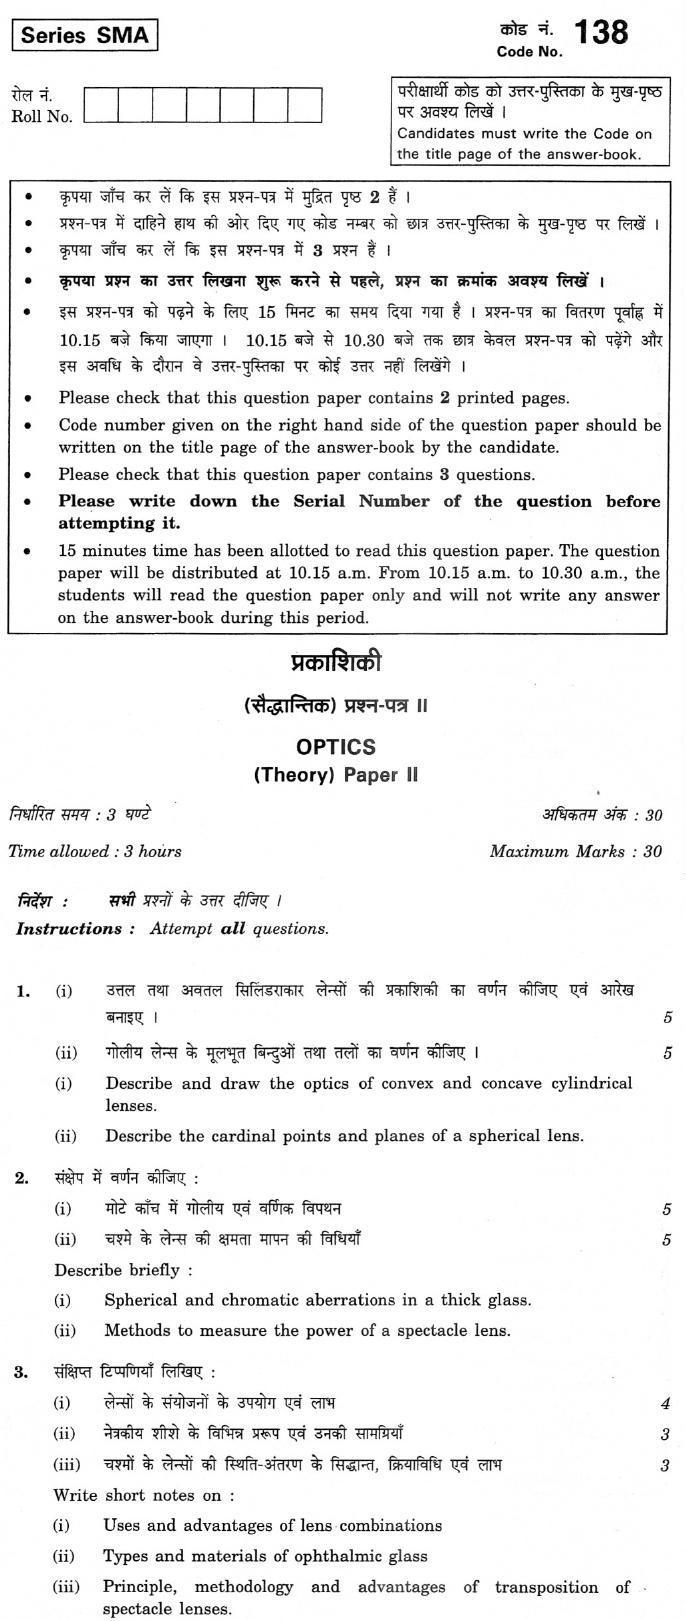 CBSE Class XII Previous Year Question Paper 2012 Optics Paper II